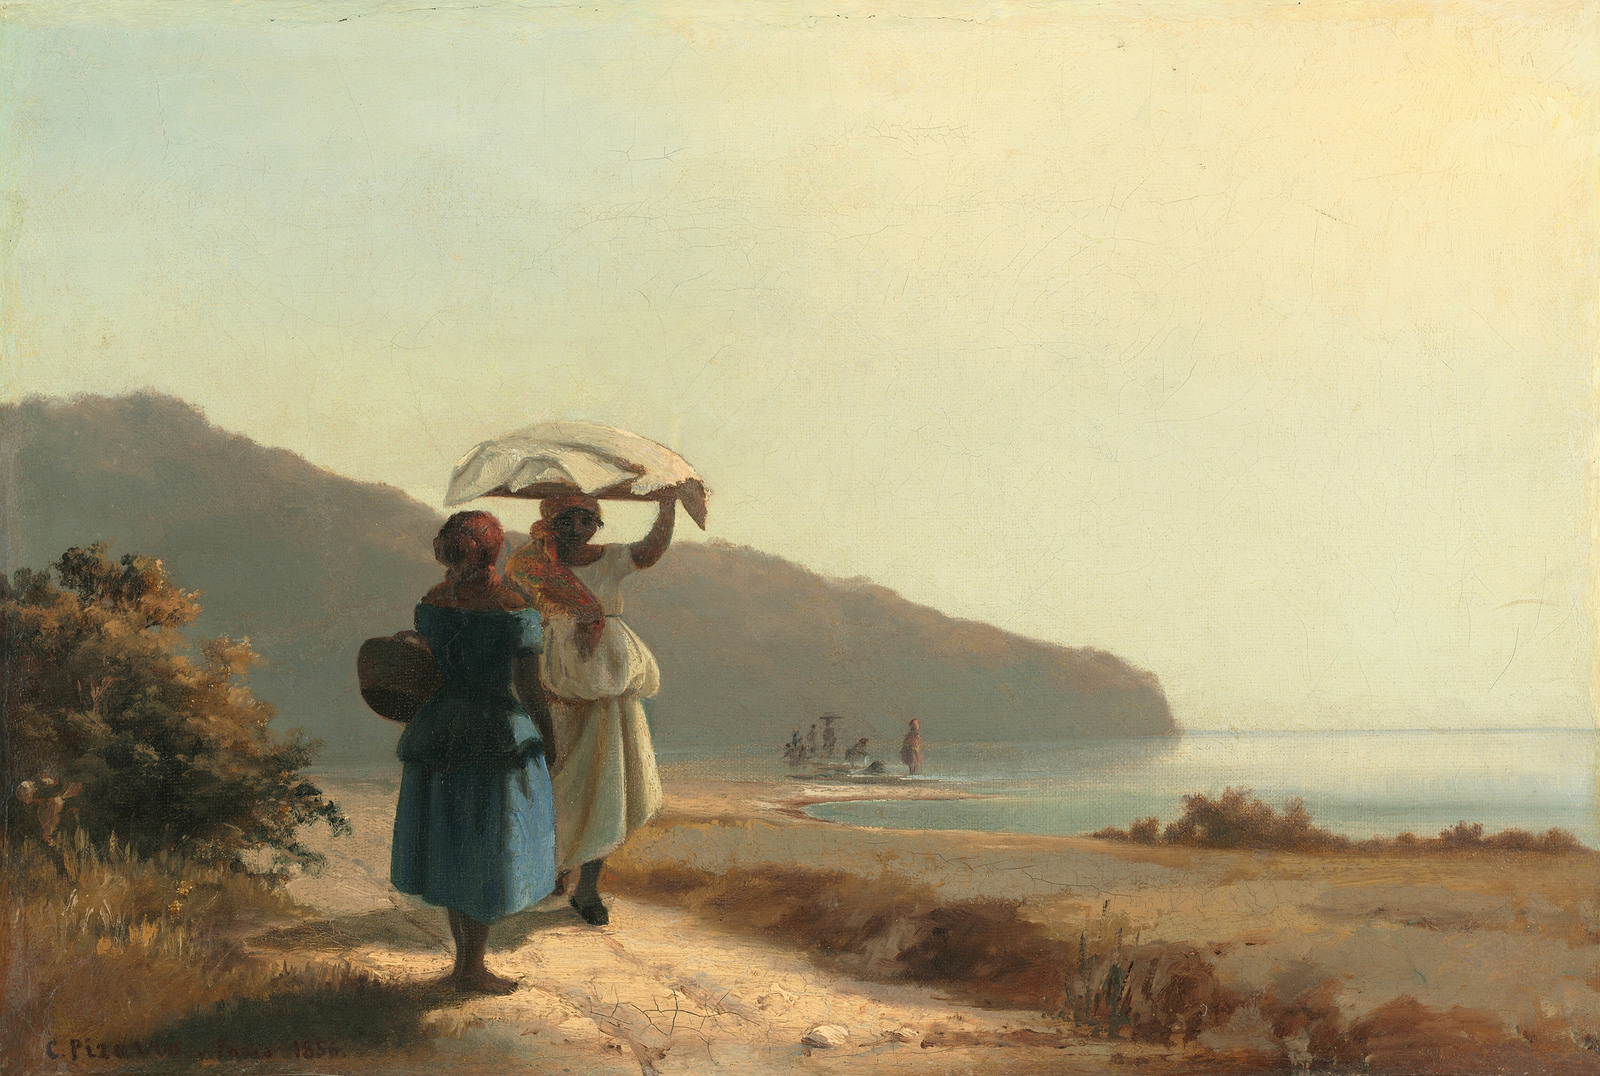 Camille Pissarro - Two Women Conversing by the Sea, 1856